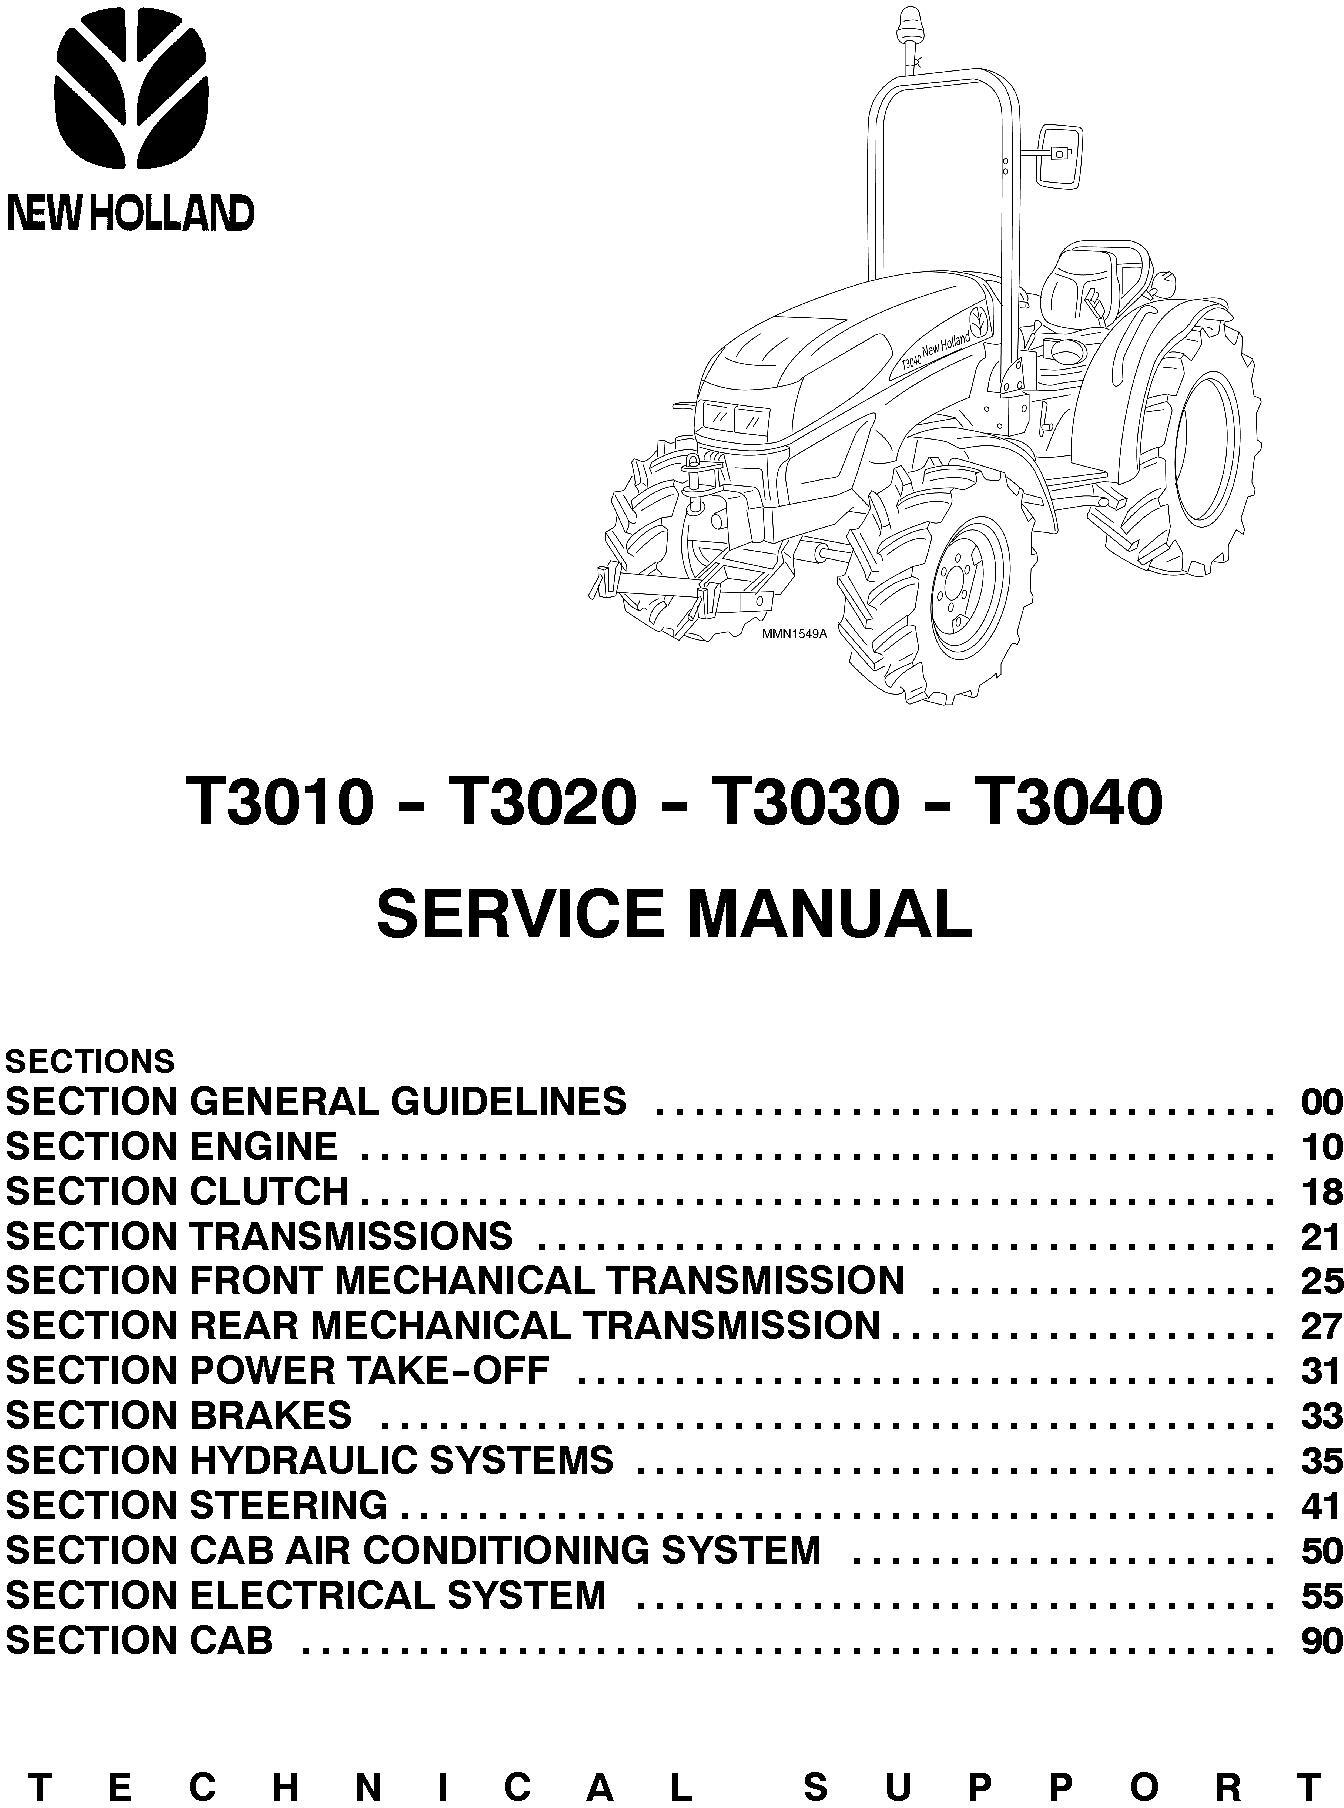 New Holland T3010, T3020, T3030, T3040 Agricultural Tractors Service Manual - 1